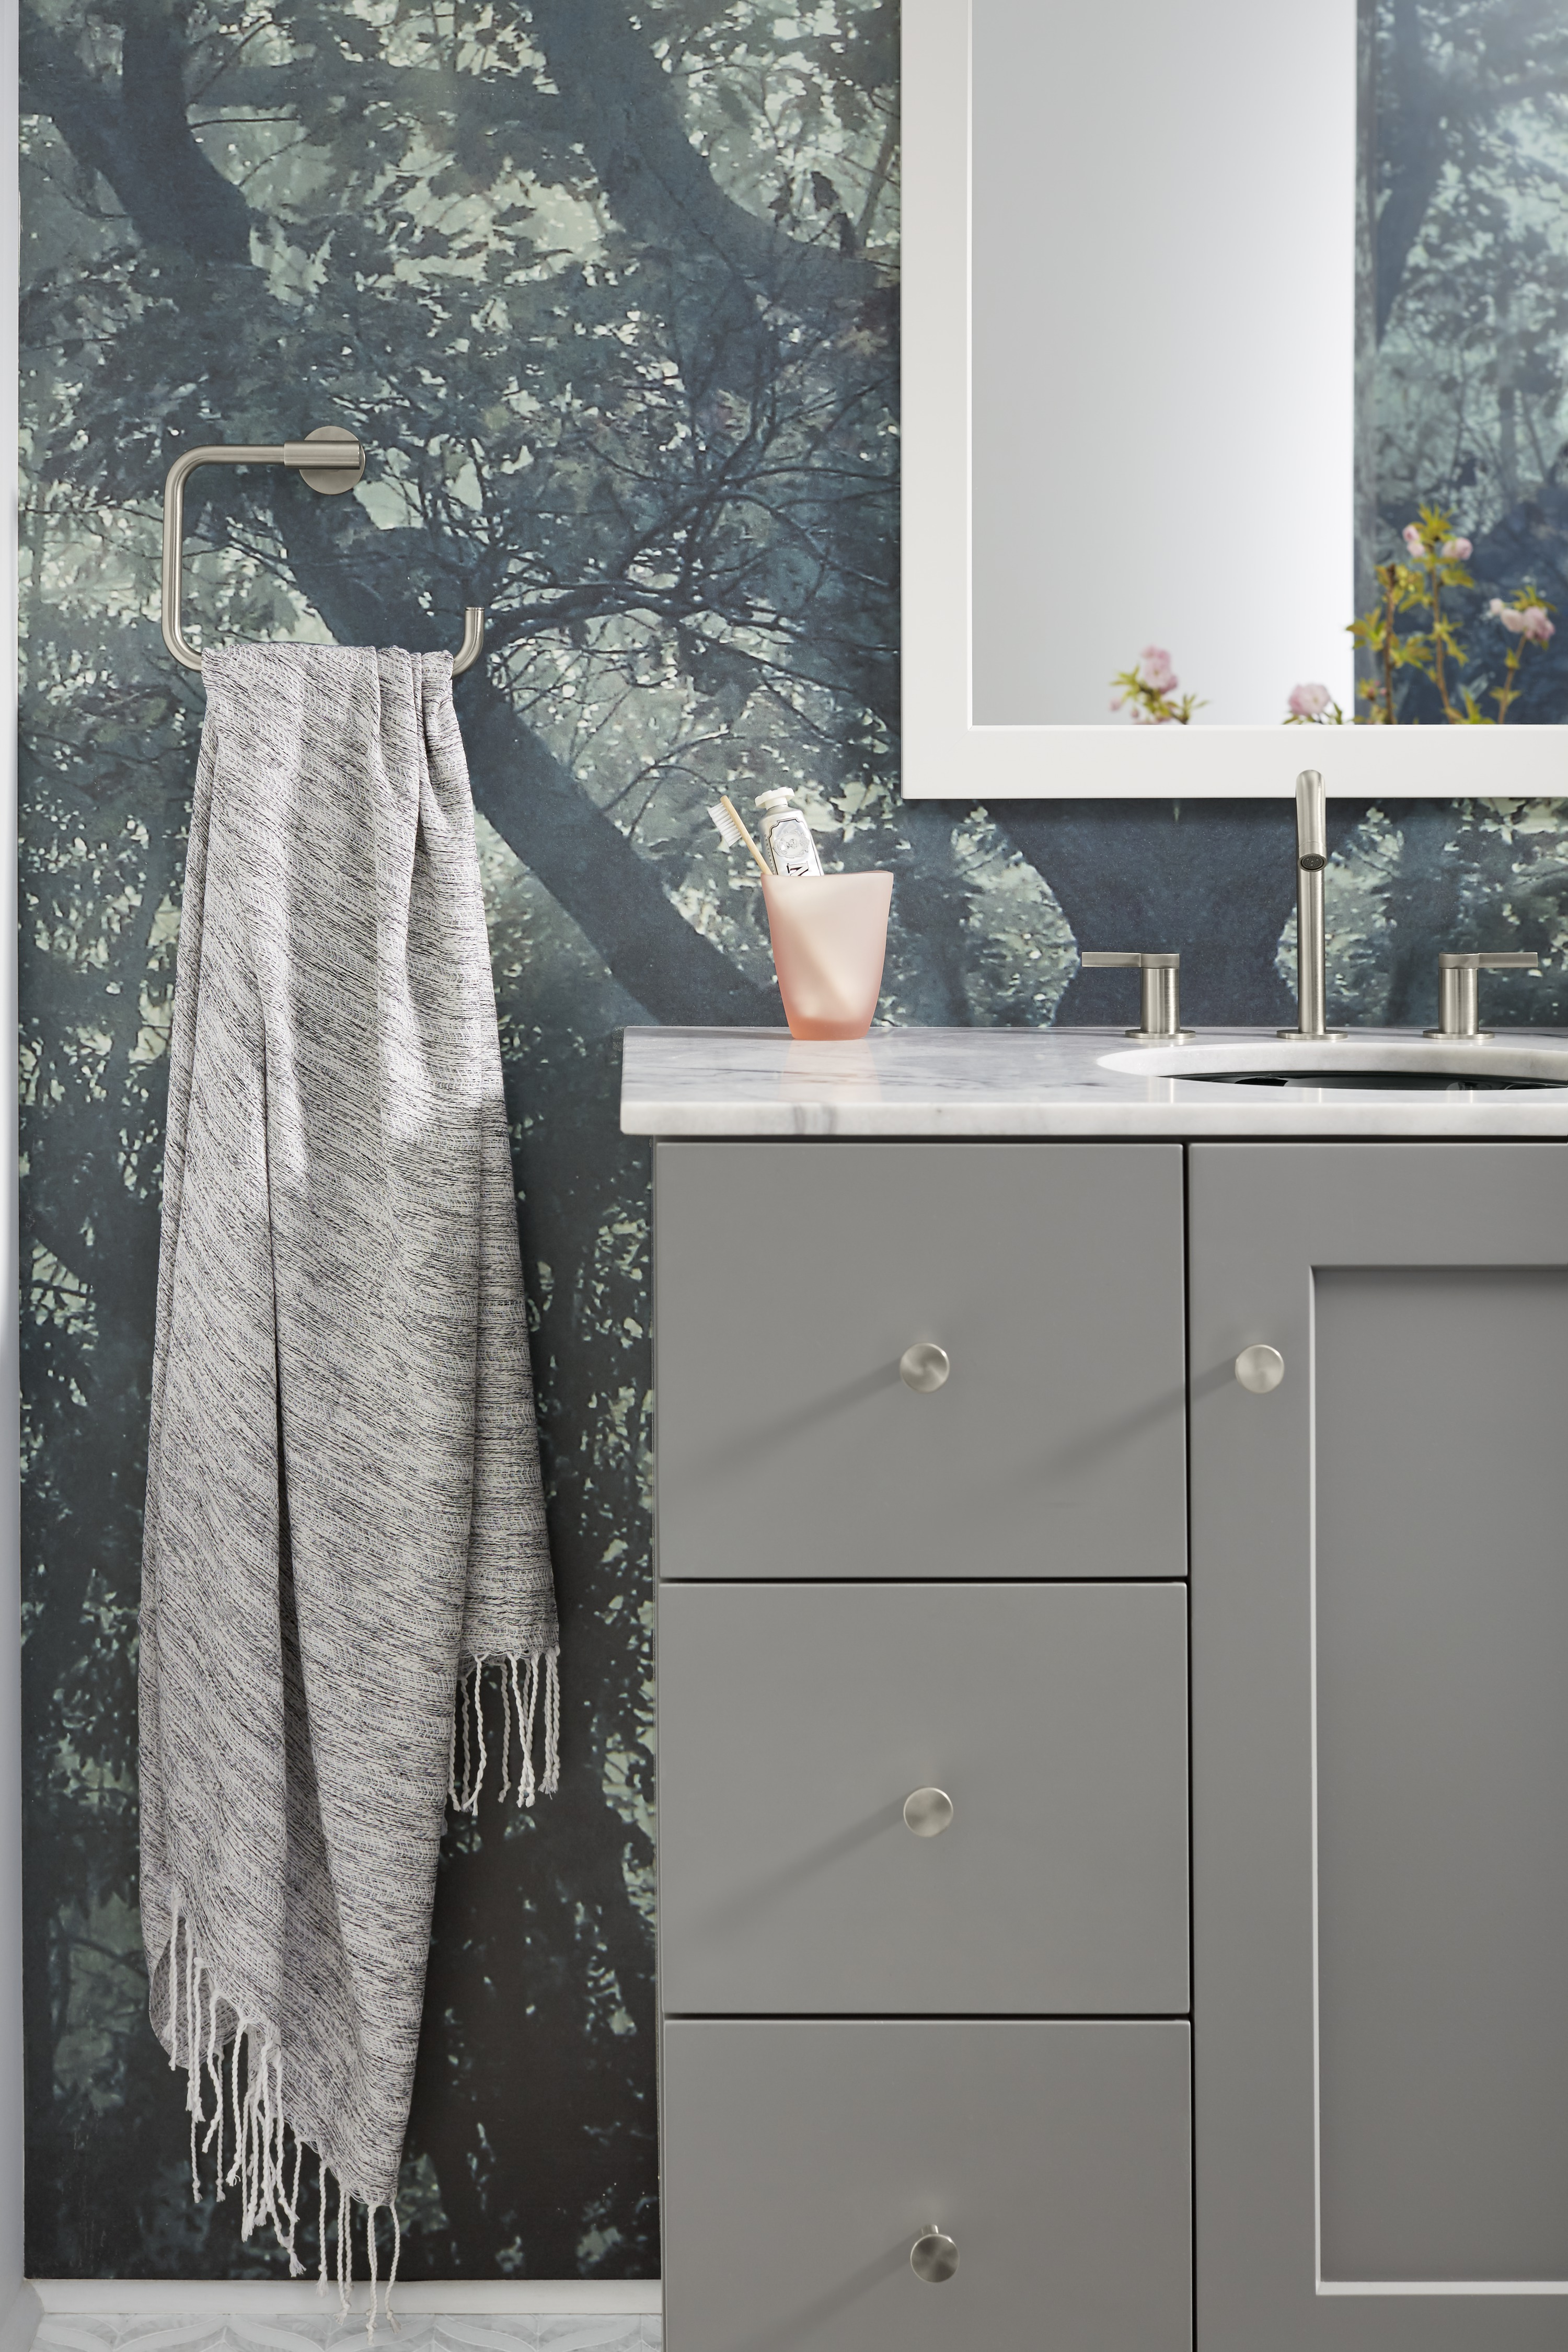 Purist® cabinet knob     Stillness® towel ring     Simple brushed nickel knobs complement the slender, modern faucet and matching towel ring.